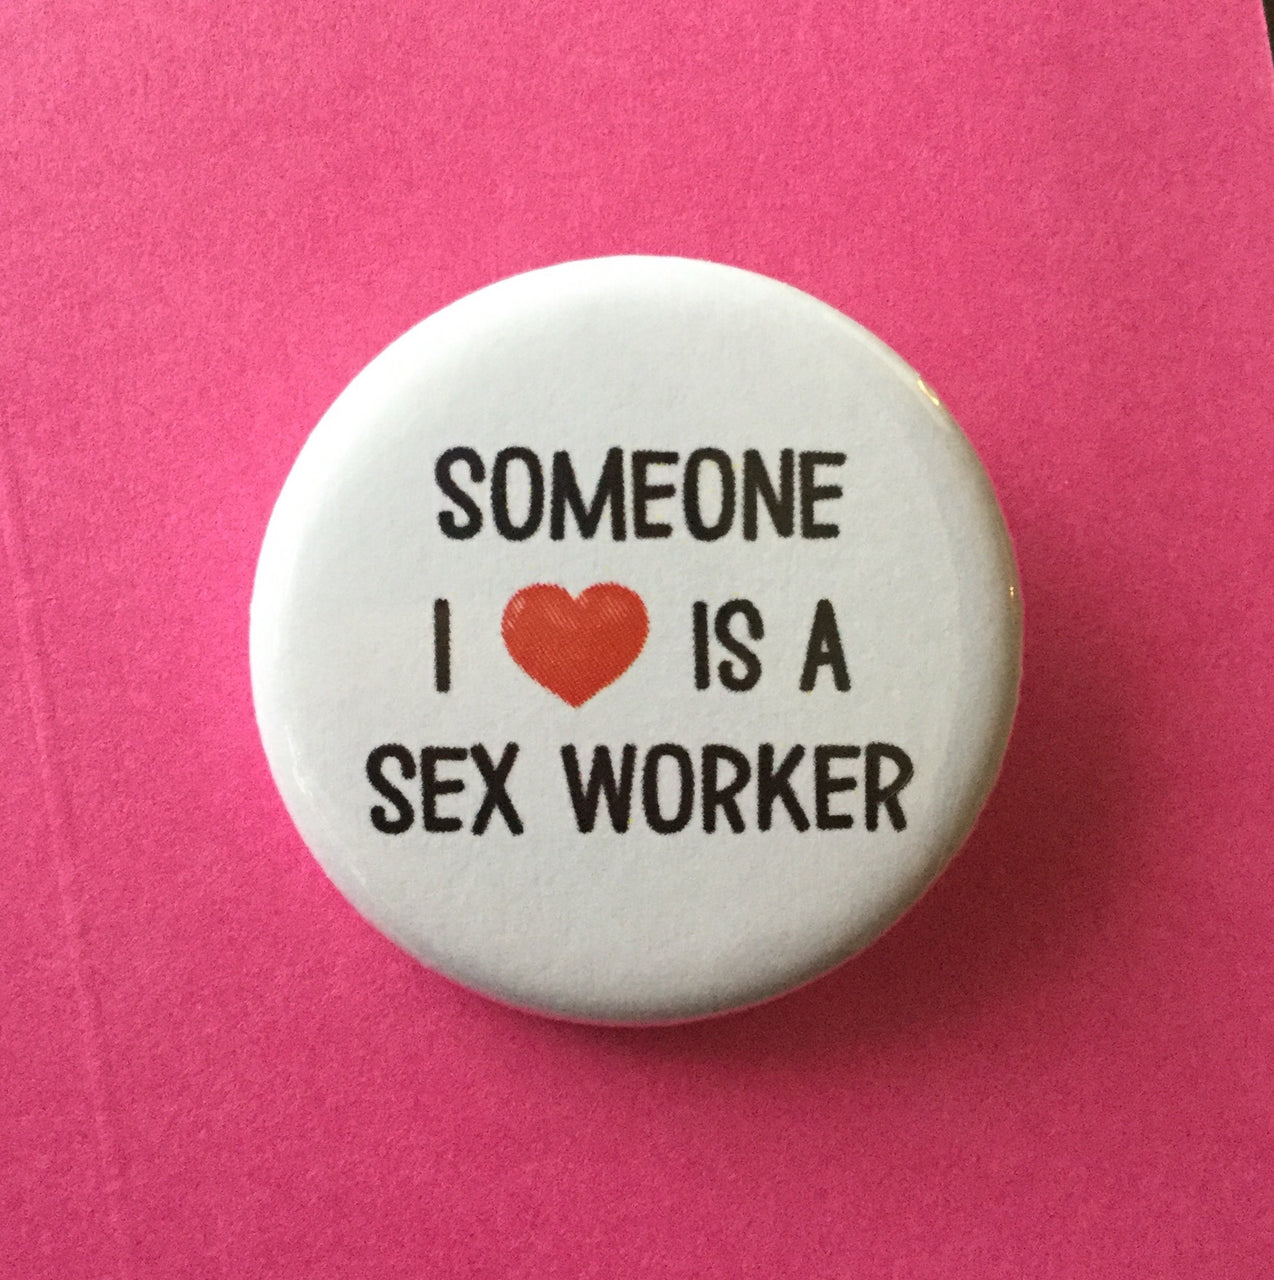 Someone I love is a sex worker - Radical Buttons